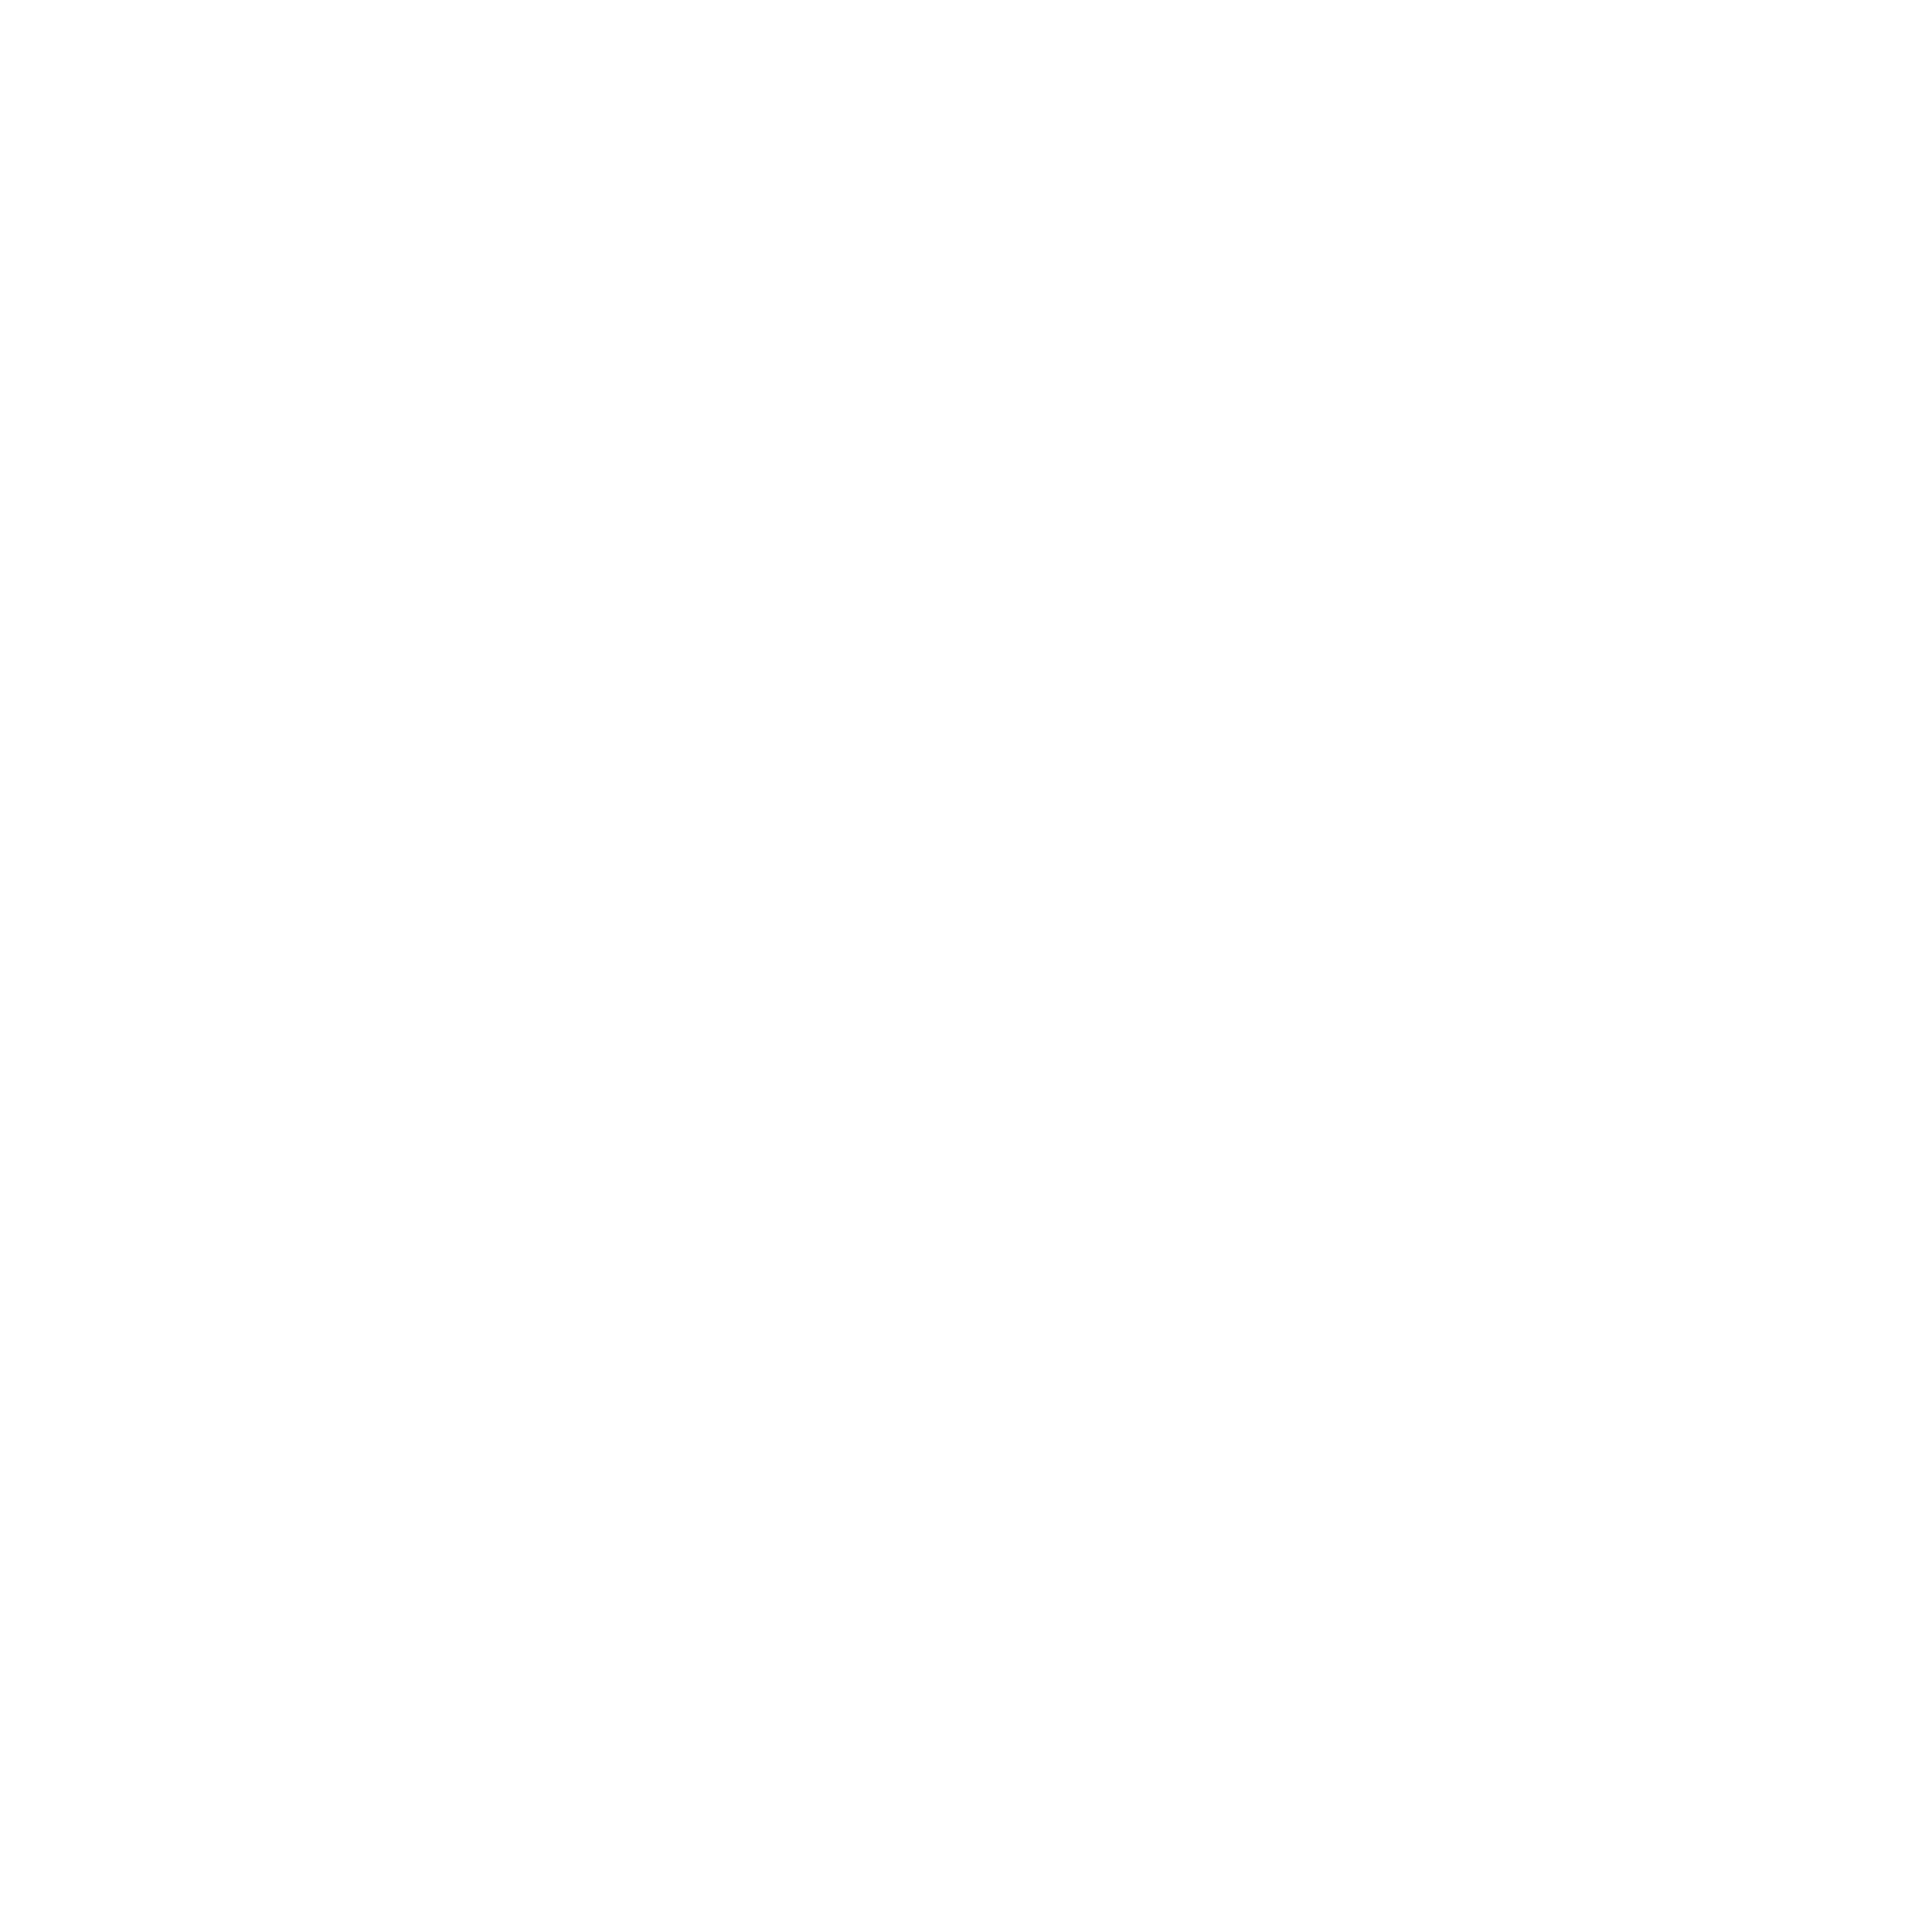 phone_icon_white